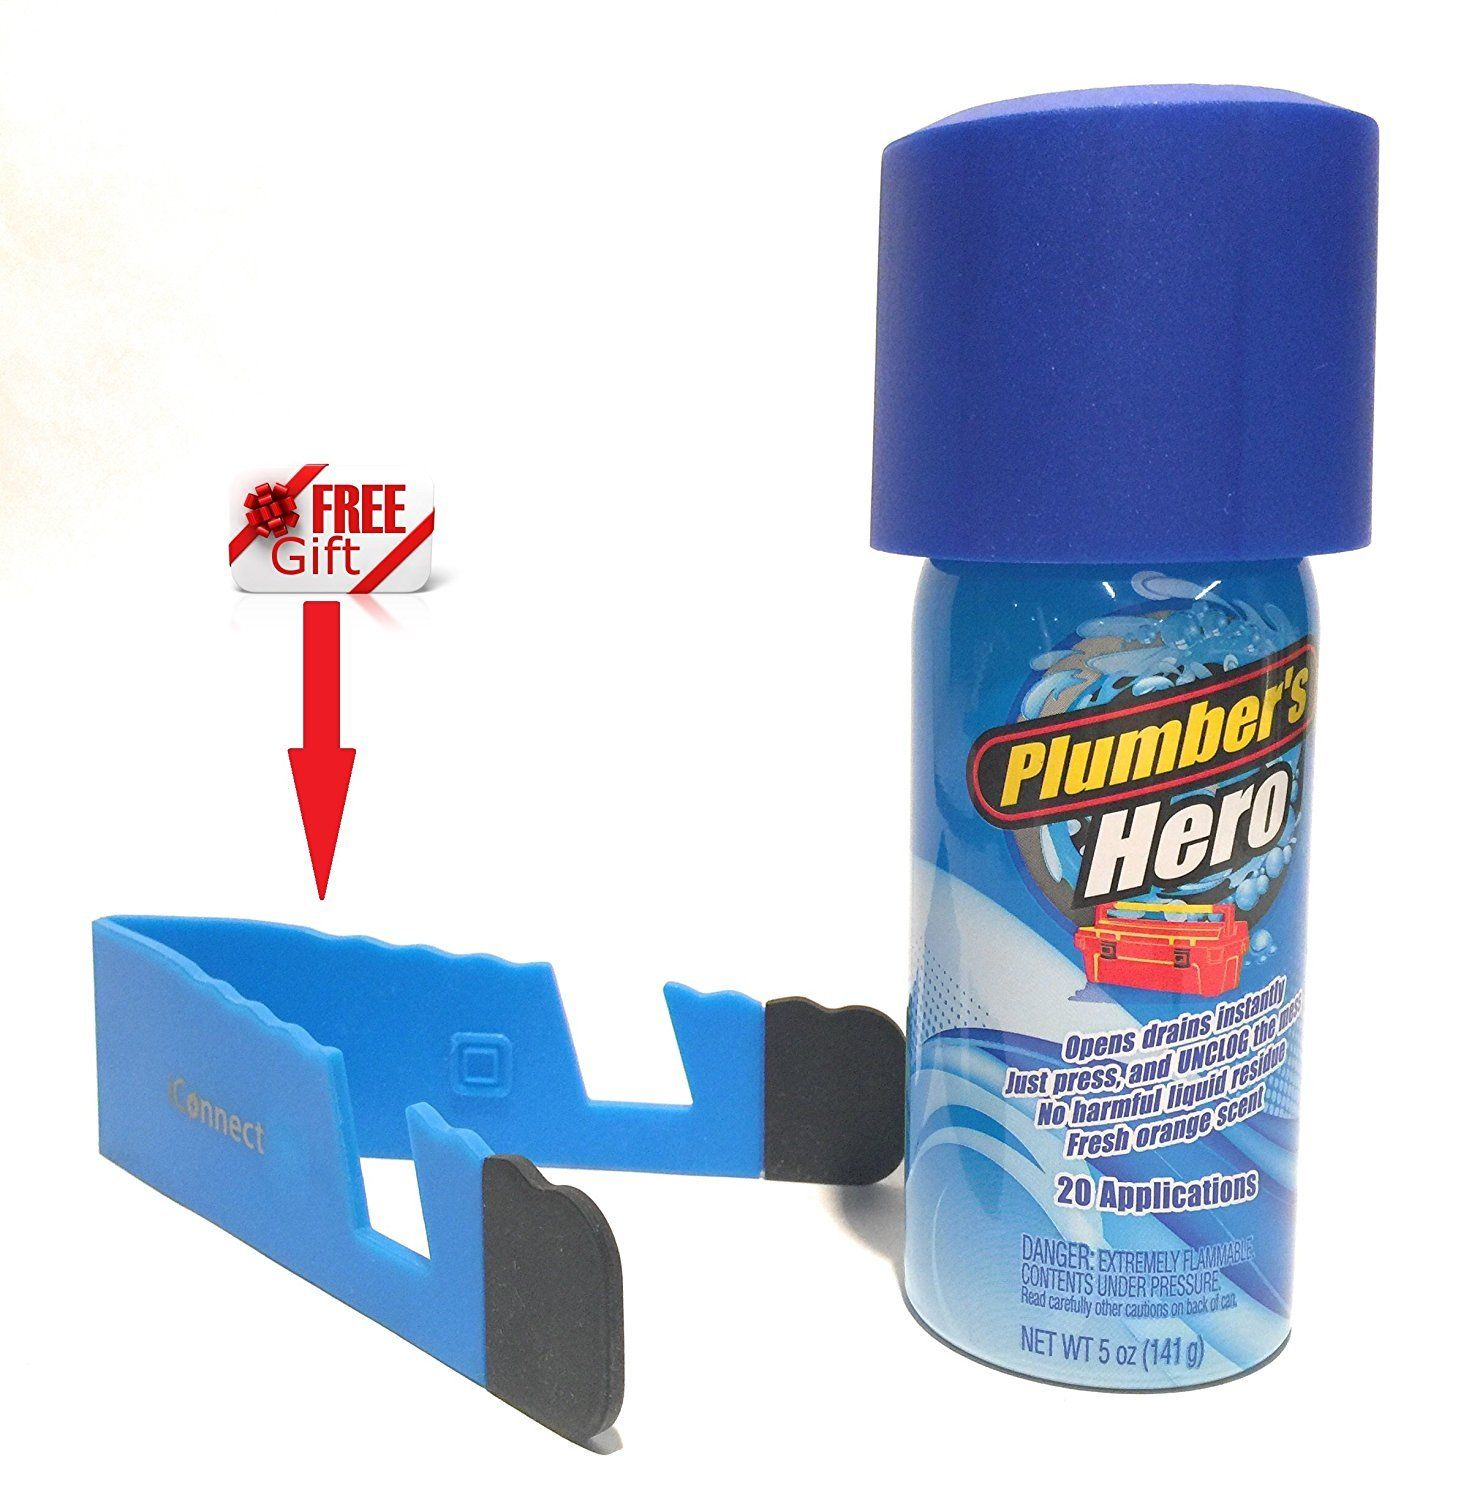 Plumberus Hero Refill Unclog Drains Instantly Unclog